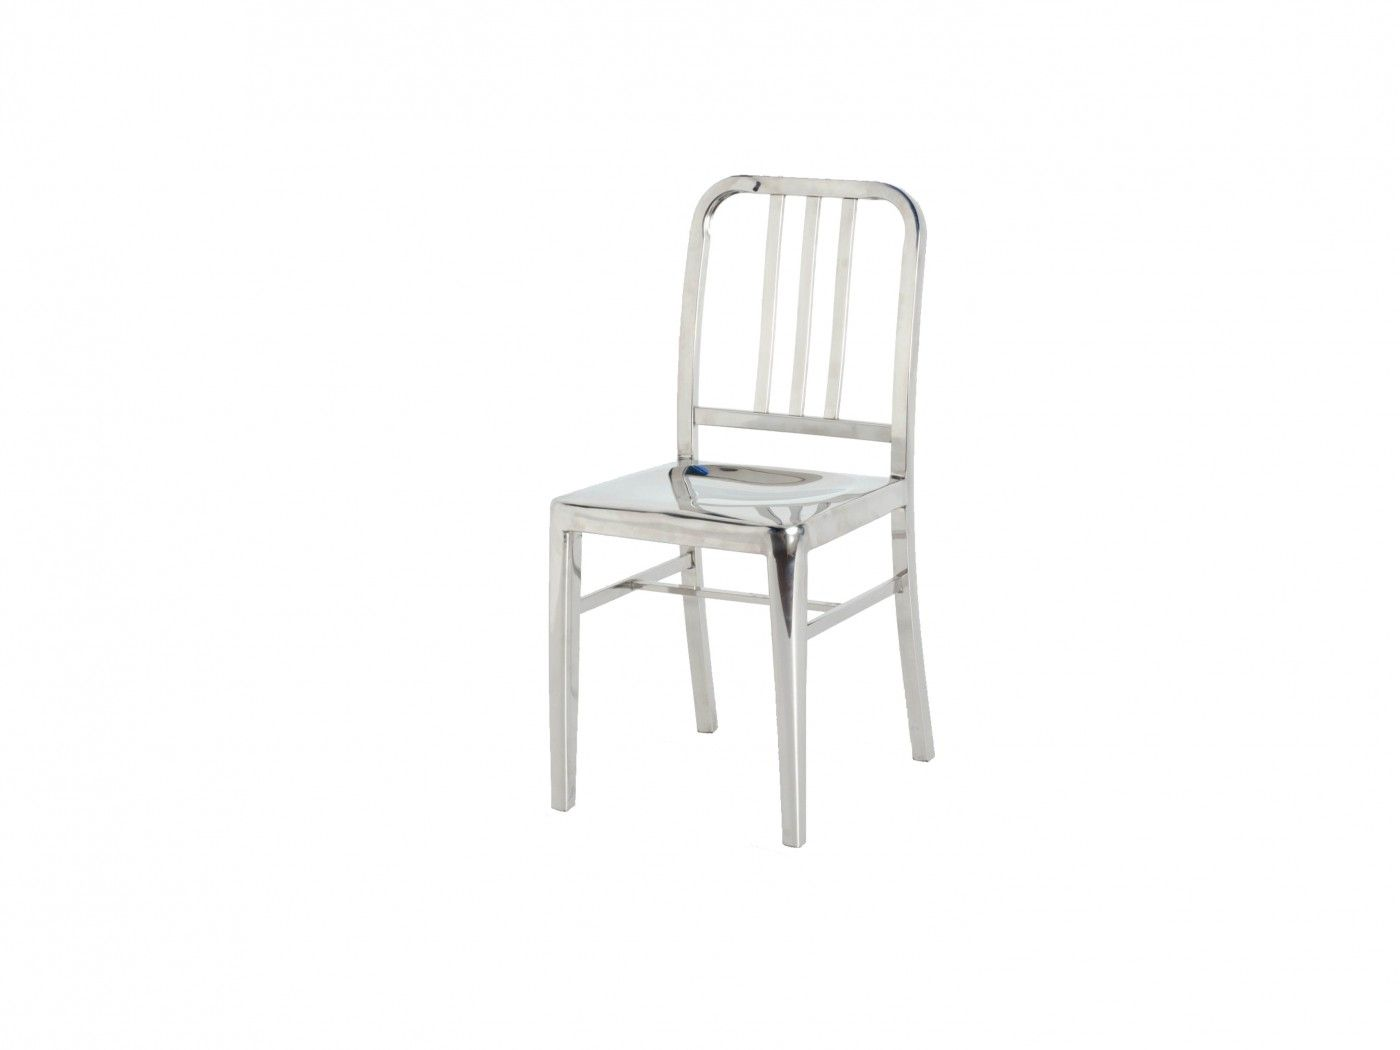 steel chair manufacturing process wood doll high design emeco 1944 this classic has been in continuous production since the mid 1940s by is stainless version an elab pinteres